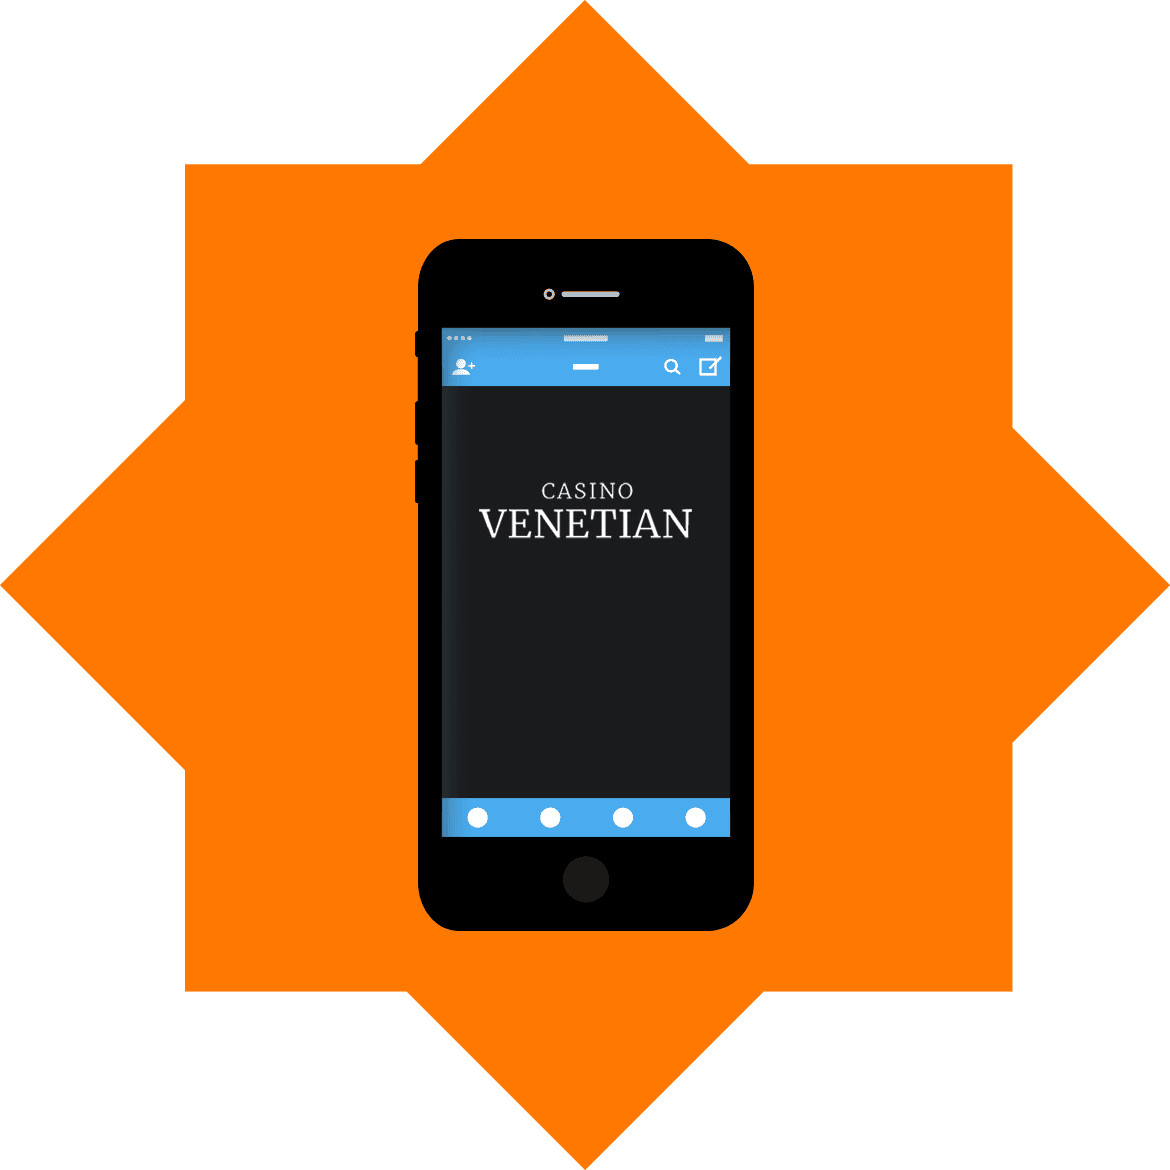 Casino Venetian - Mobile friendly